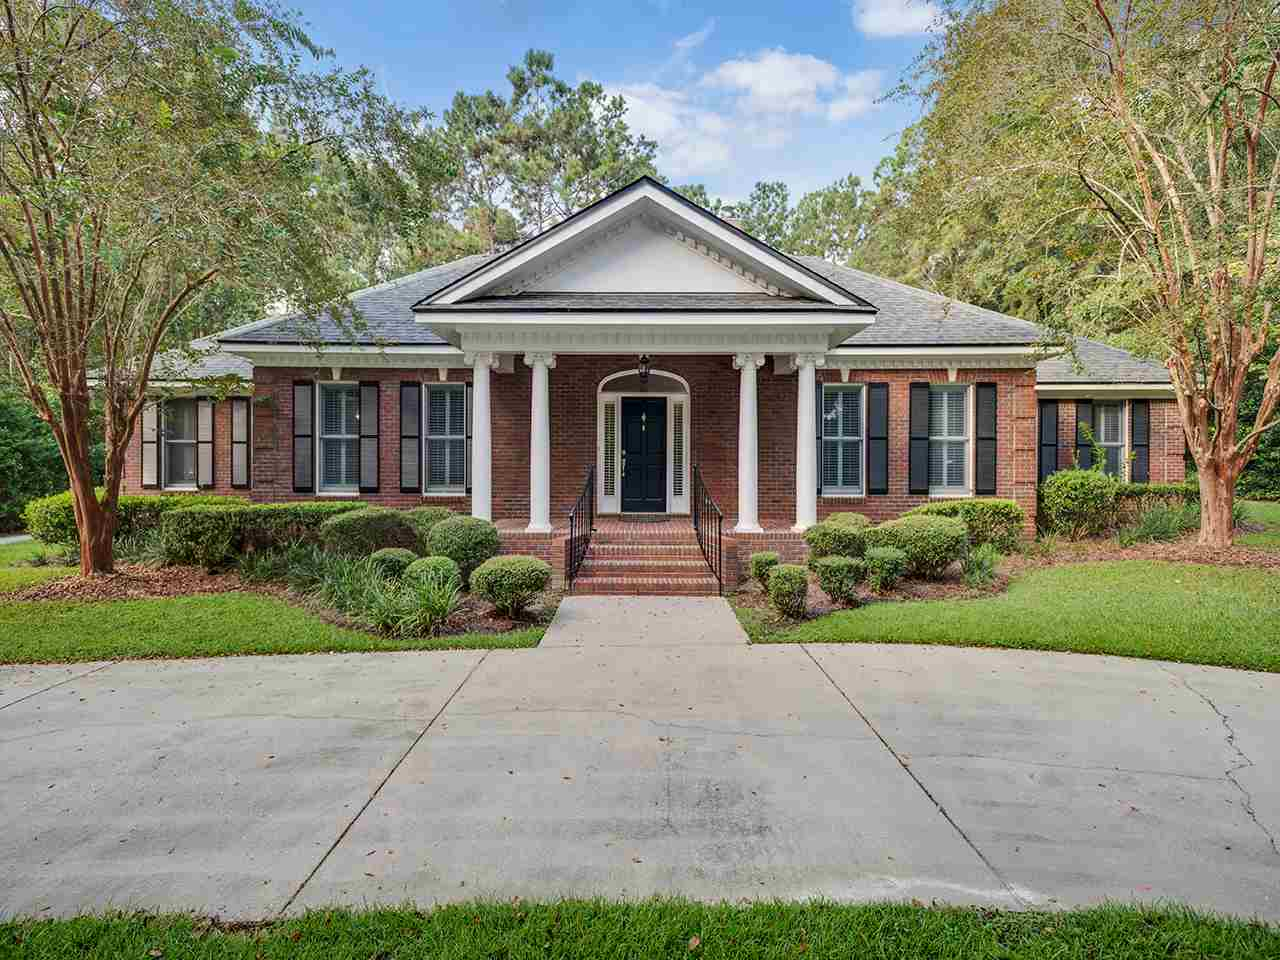 Photo of 8551 Congressional, Tallahassee, FL 32312